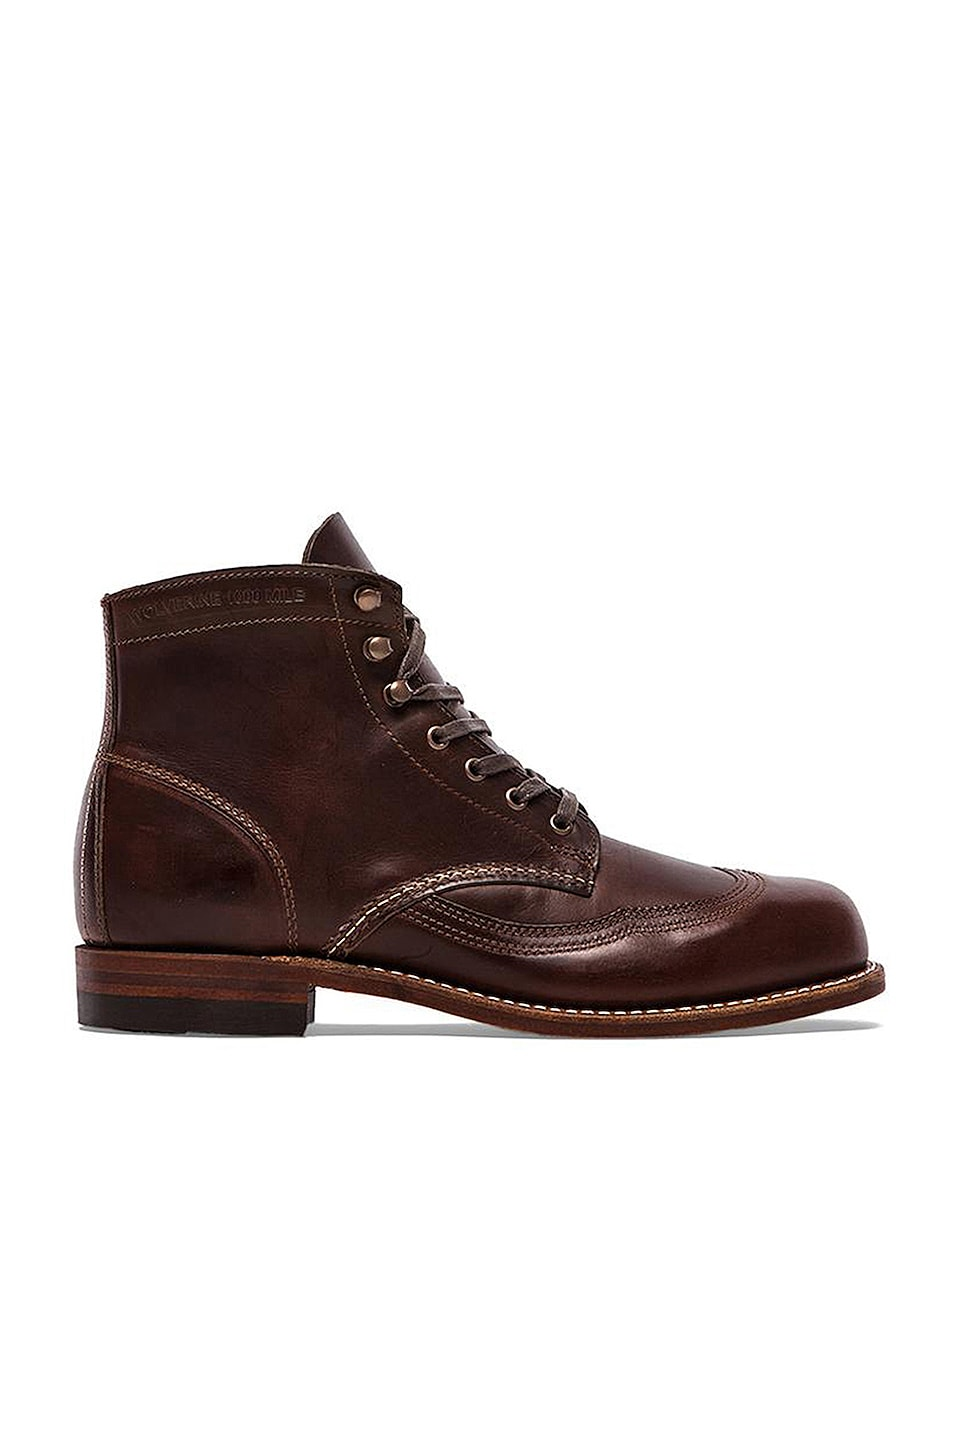 1000 Mile Addison Wingtip Boot by Wolverine